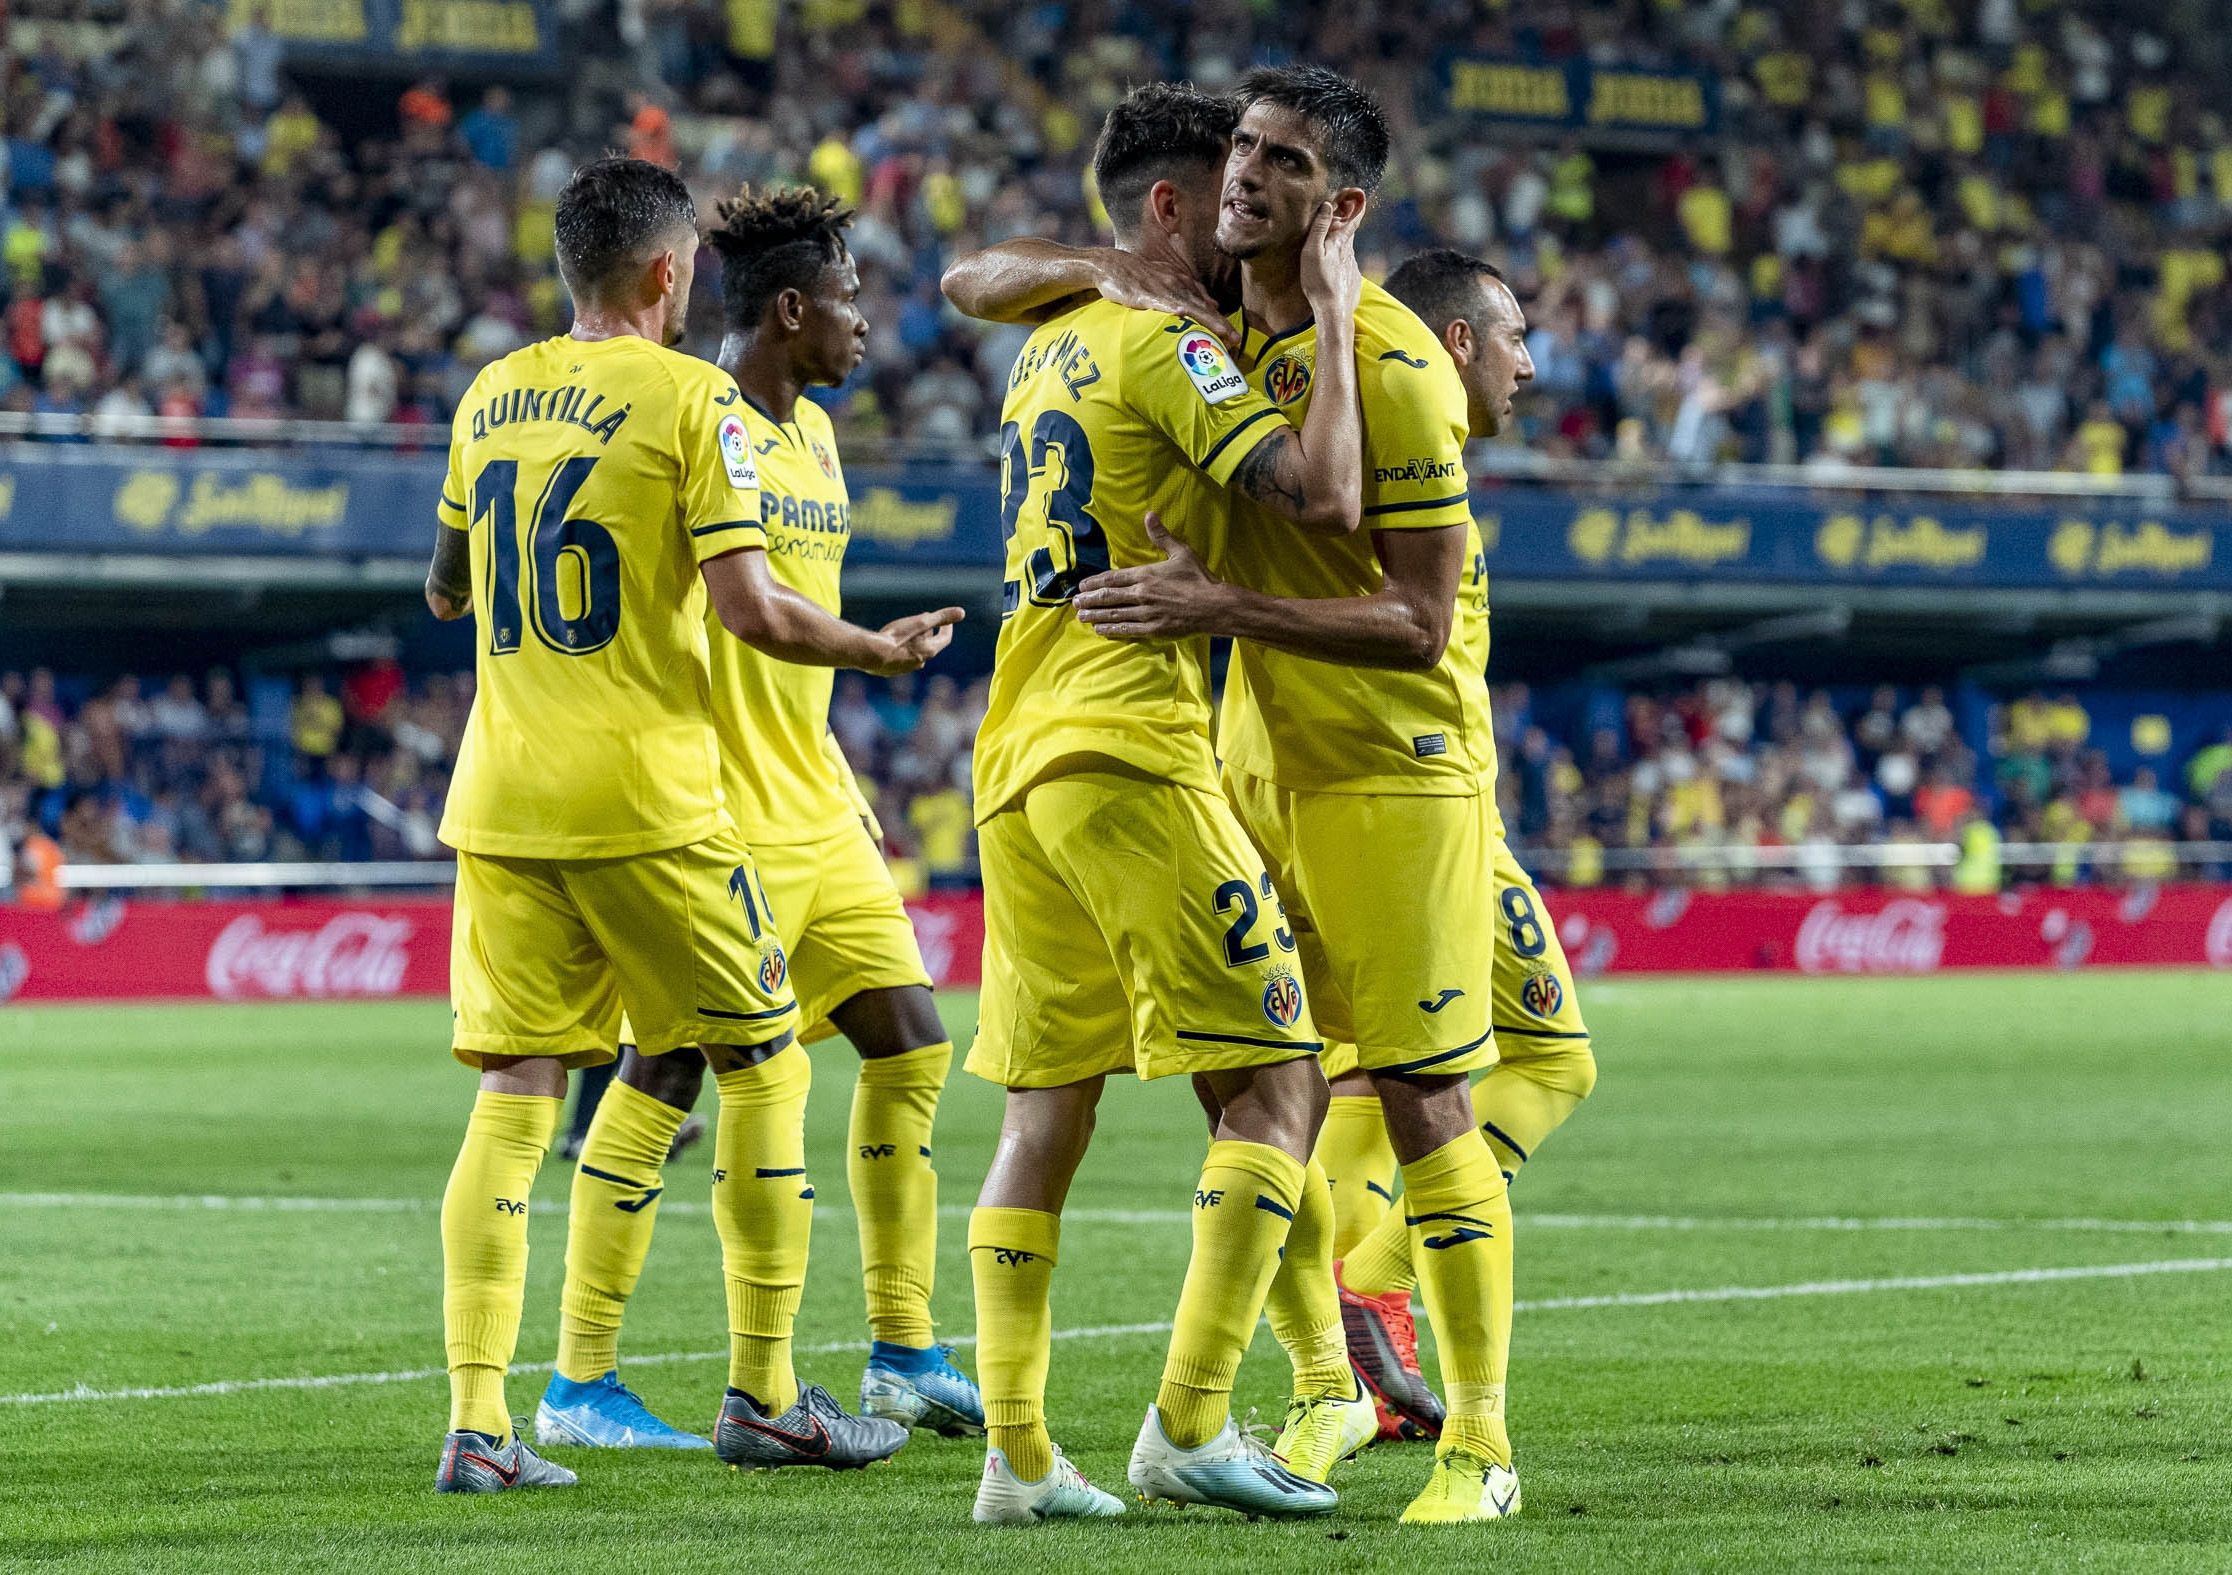 Get your ticket now to cheer on Villarreal at the Camp Nou!